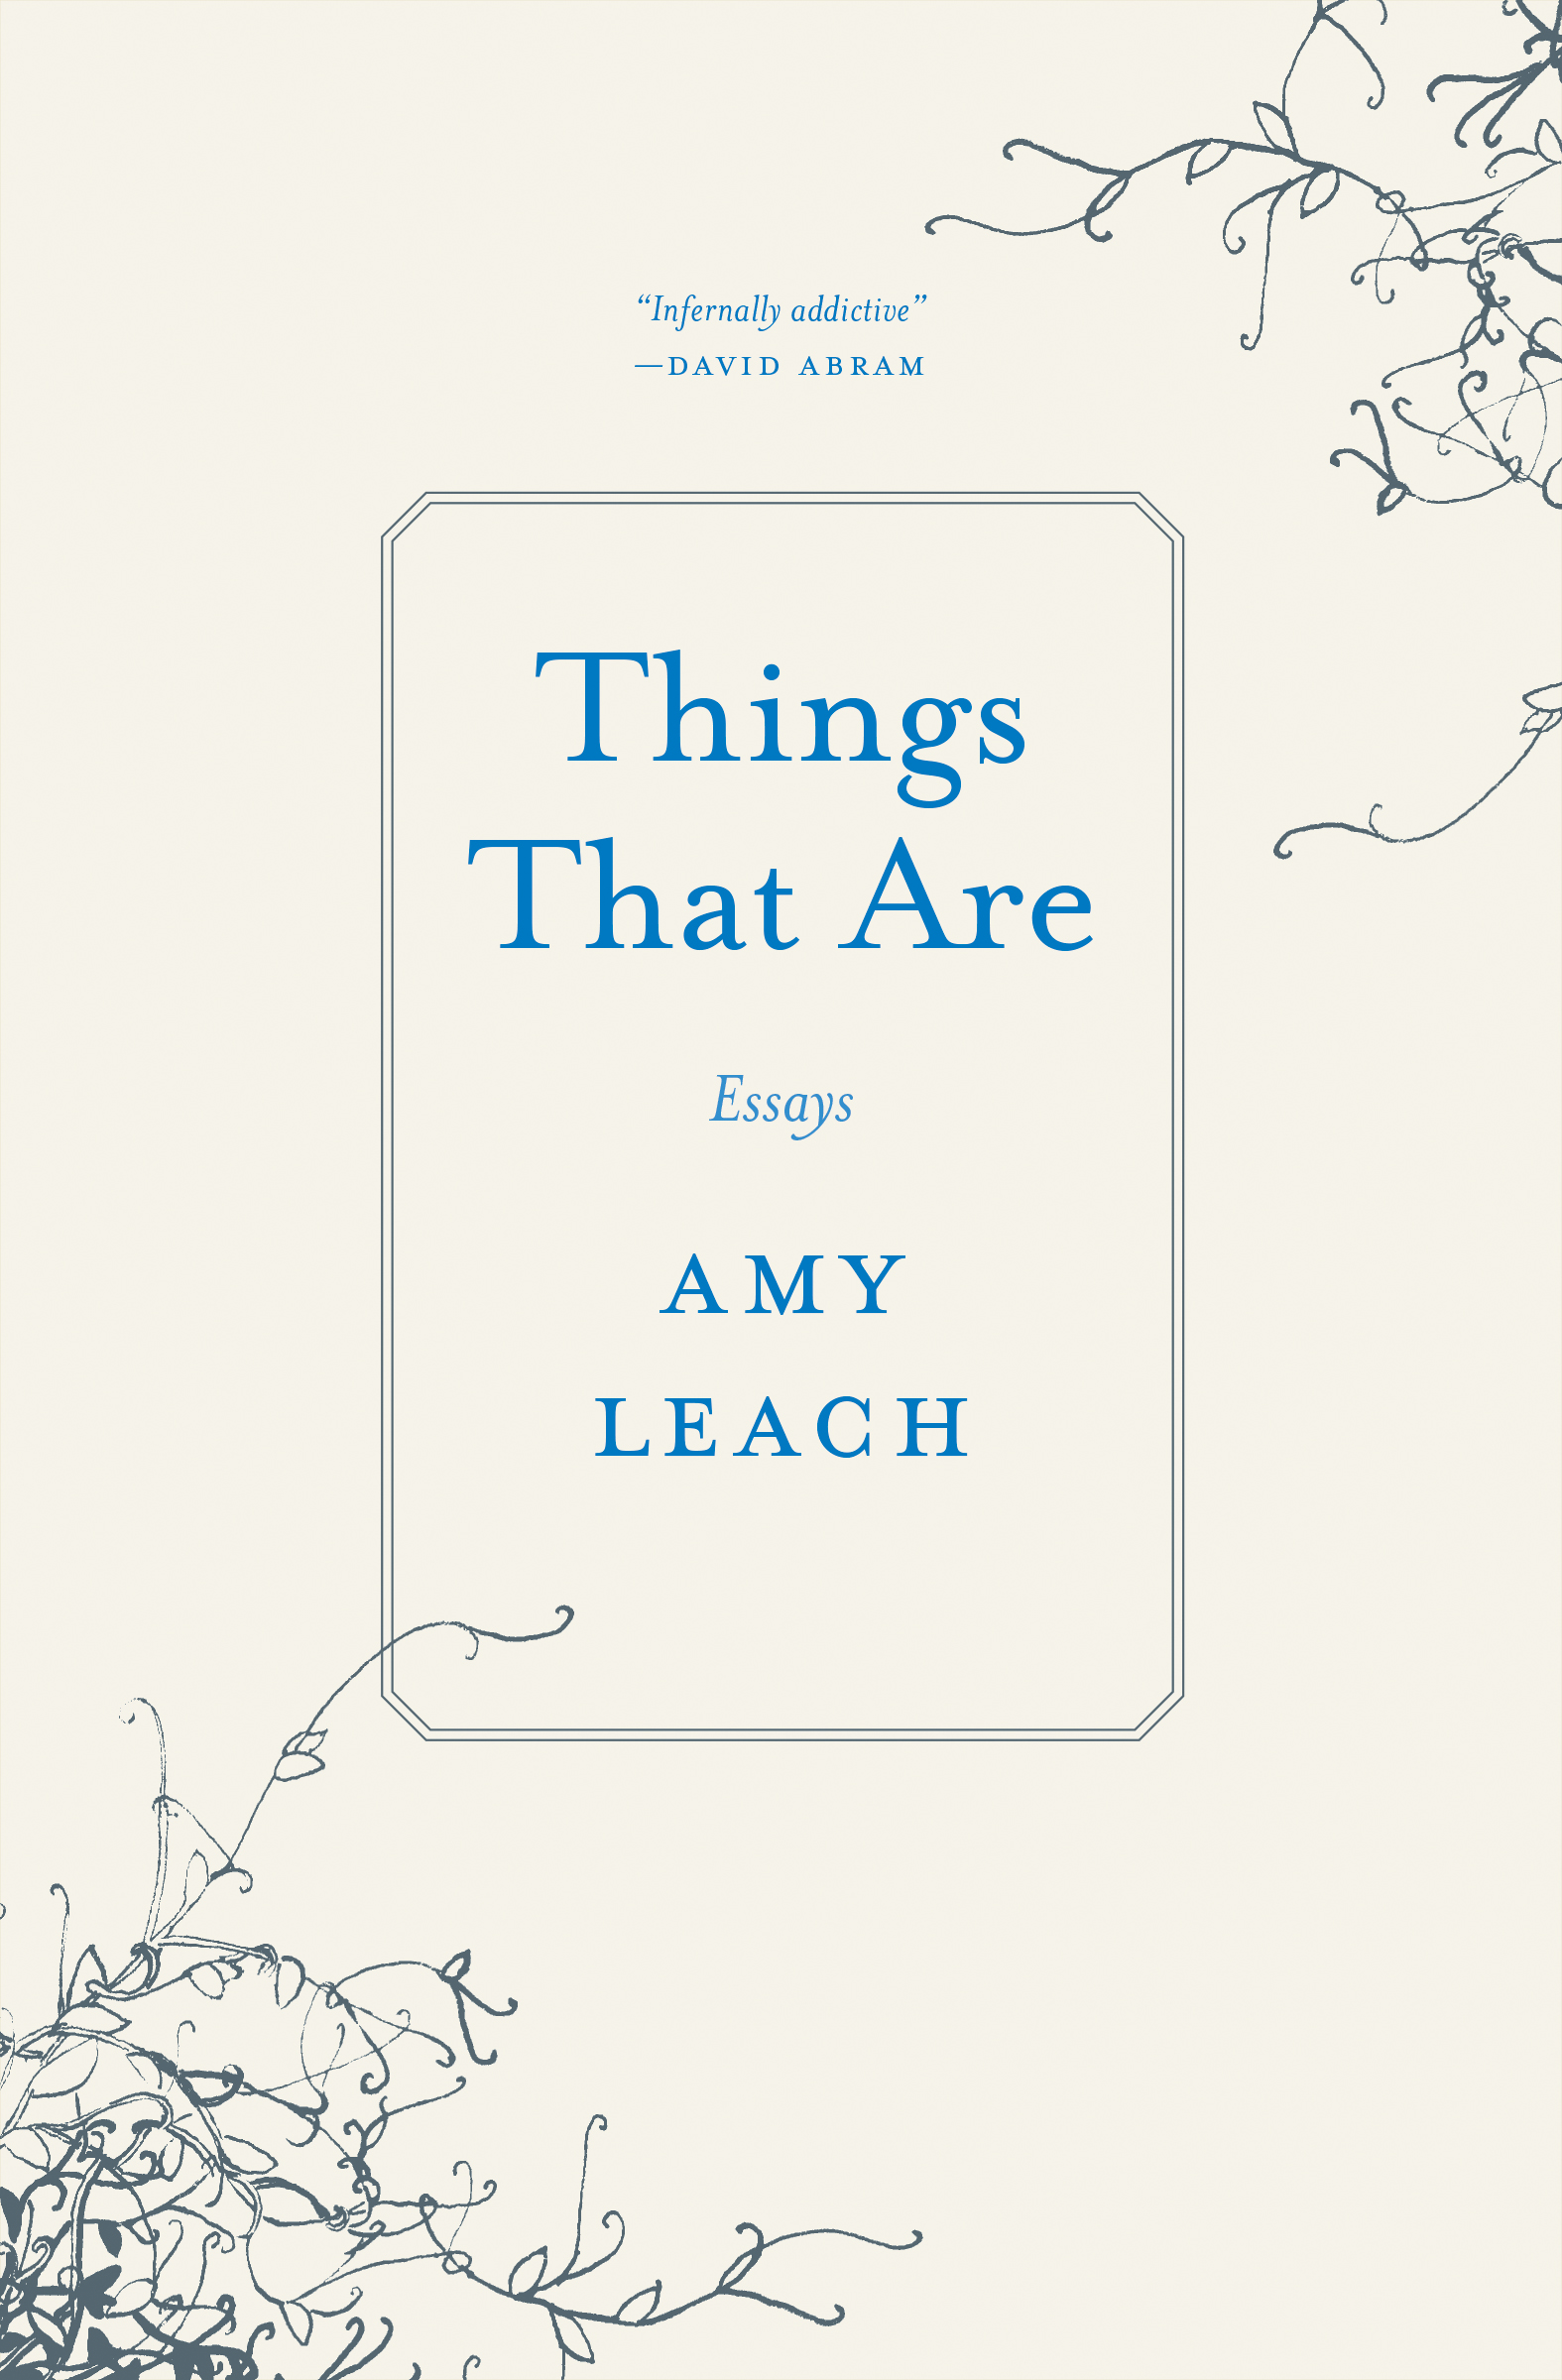 things that are editions cover art